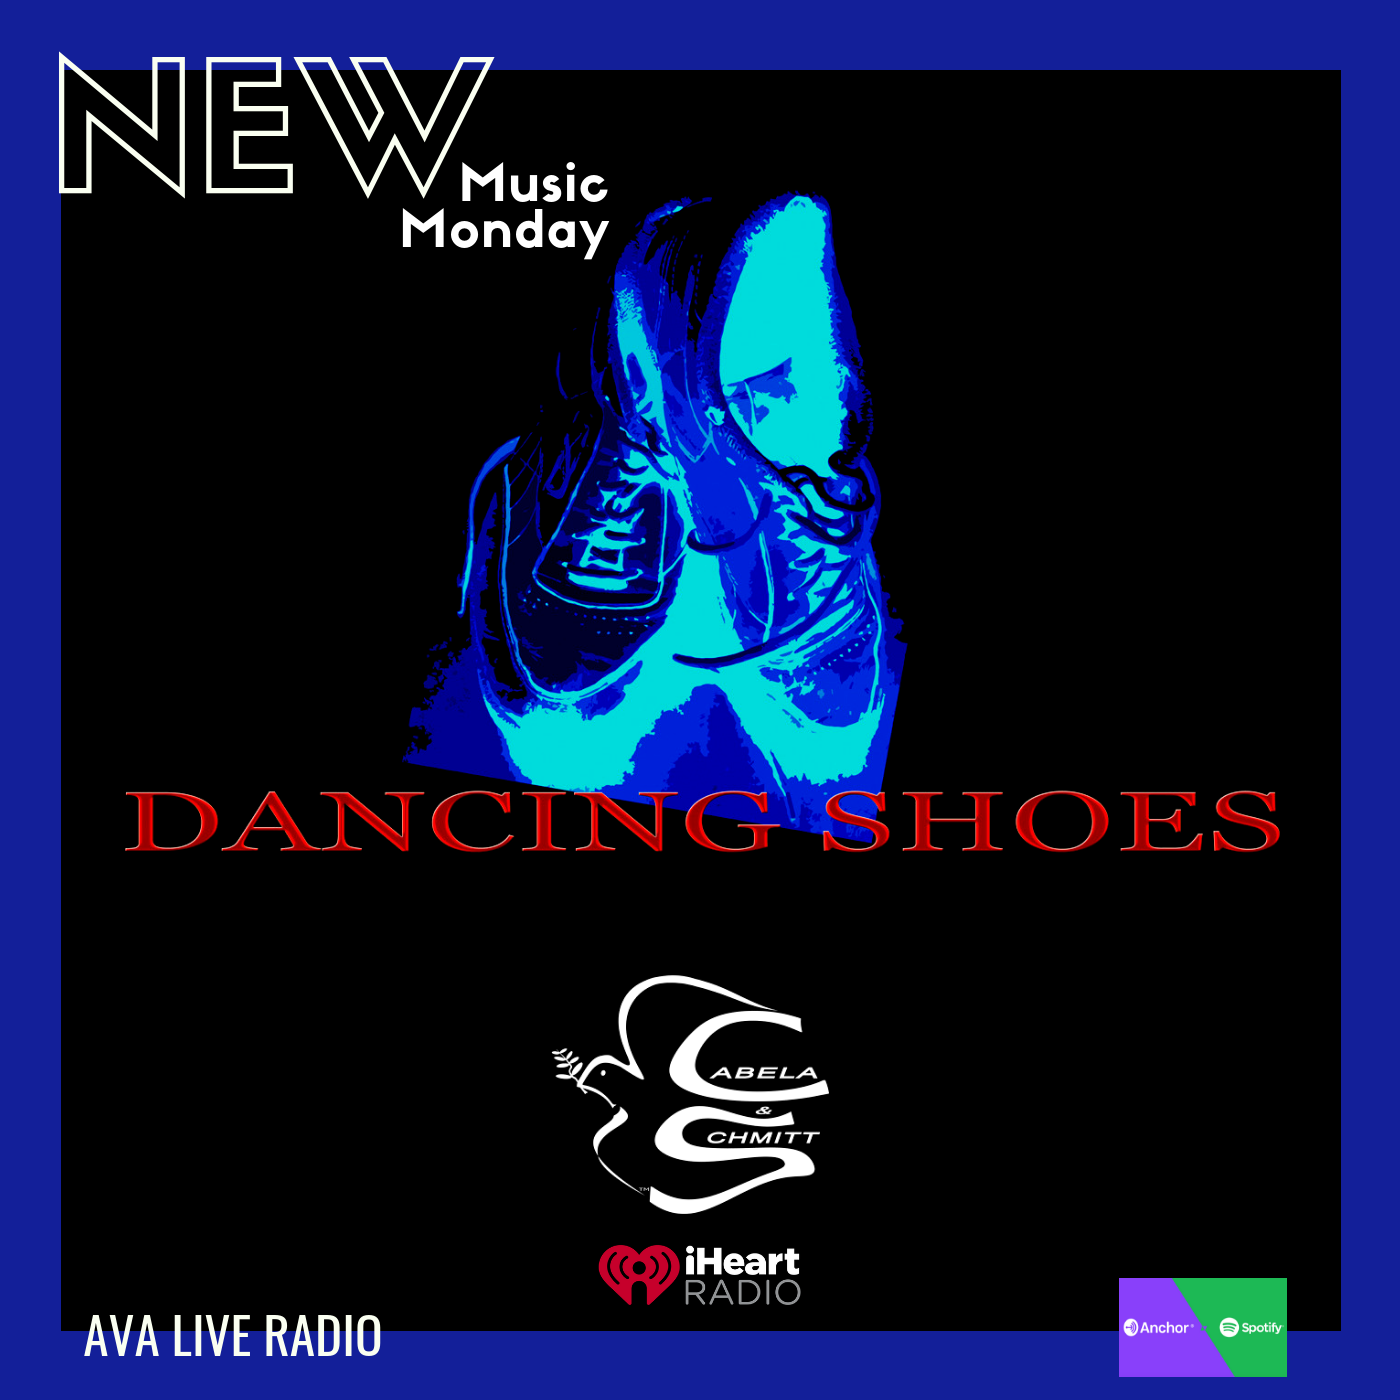 Cabela and Schmitt Dancing shoes avaliveradio.png